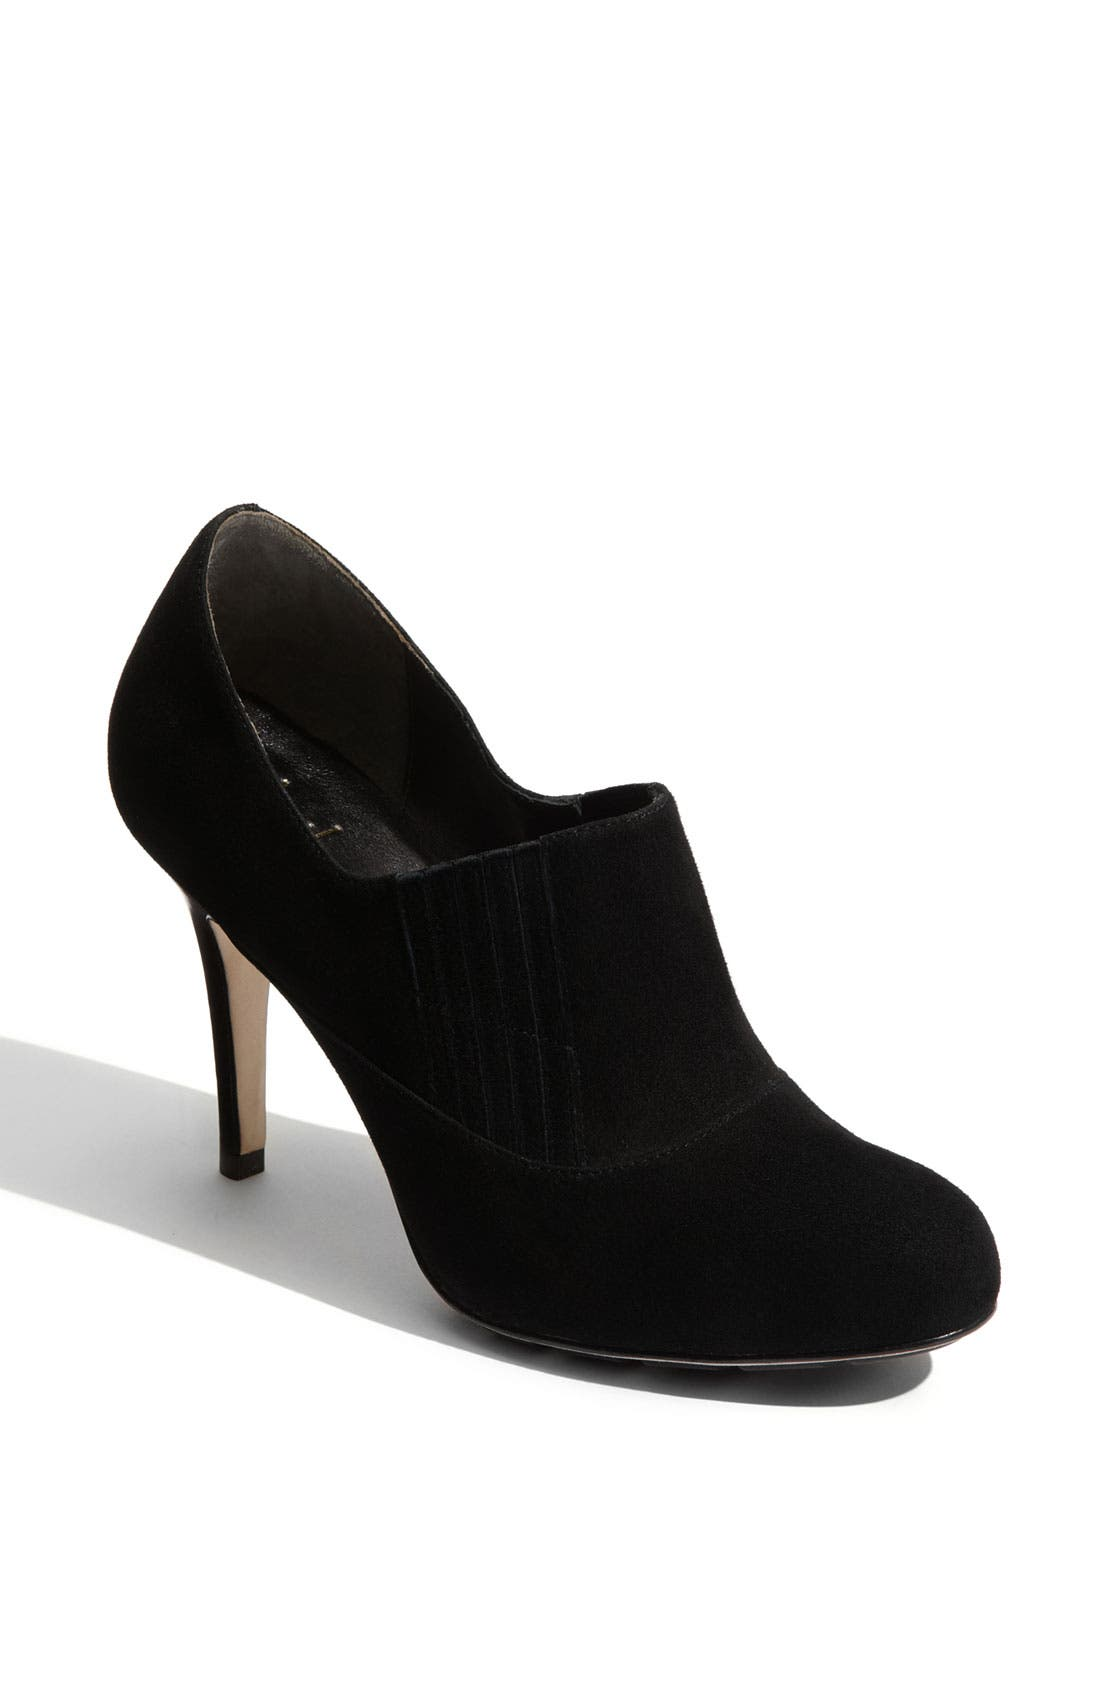 Alternate Image 1 Selected - Cole Haan 'Air Talia' Suede Bootie